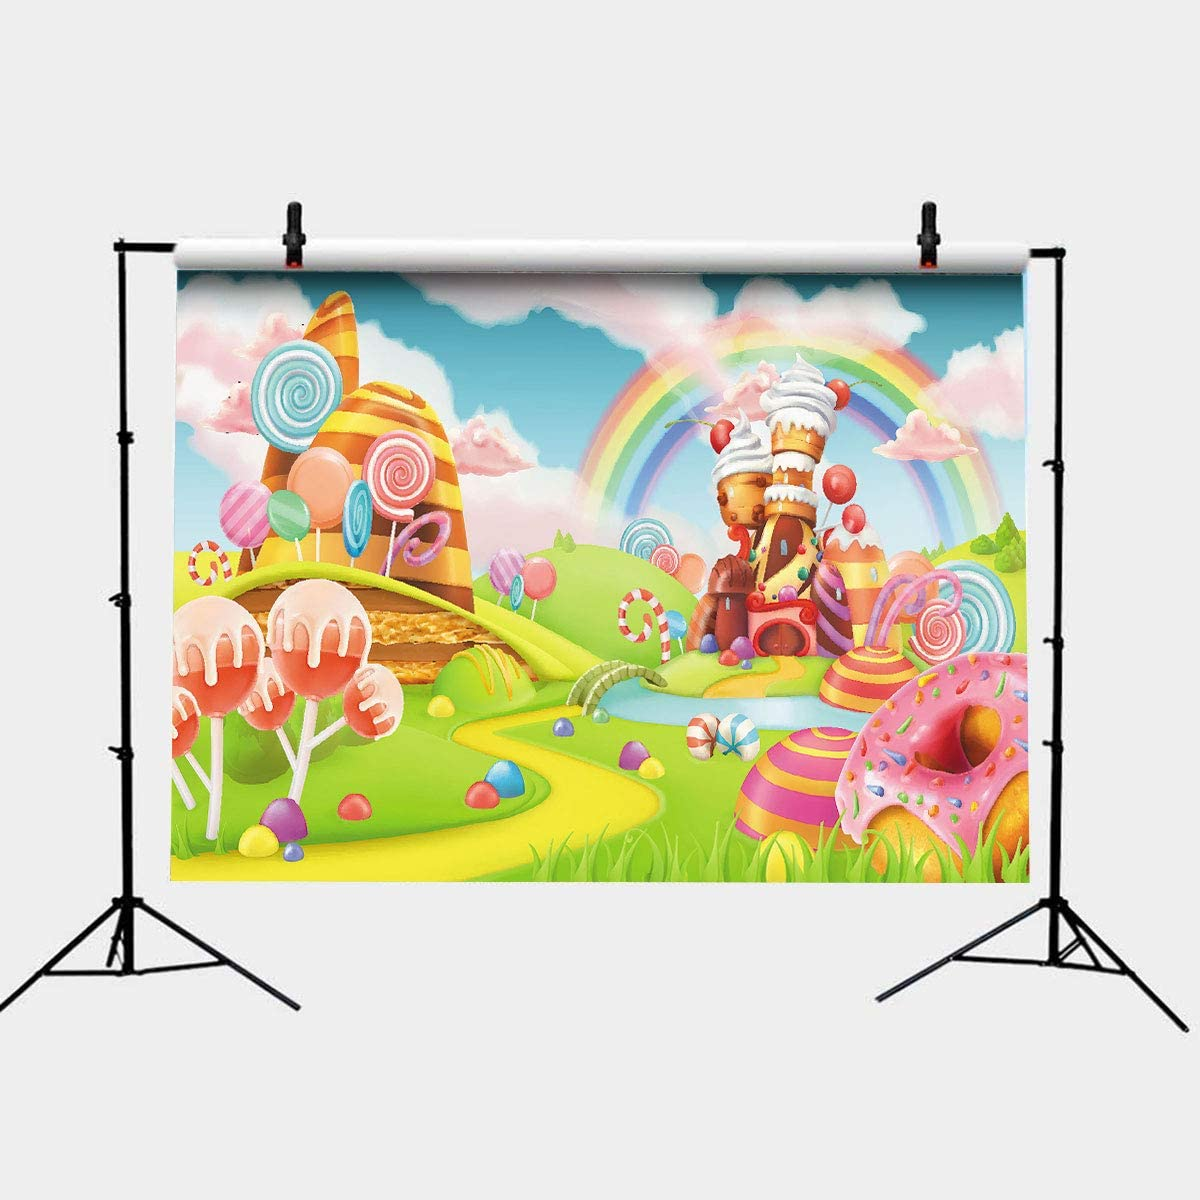 Orange and Pink 10x12 FT Photo Backdrops,Festive Warm Colored Balloons with Swirls Celebration Themed Composition Background for Child Baby Shower Photo Vinyl Studio Prop Photobooth Photoshoot